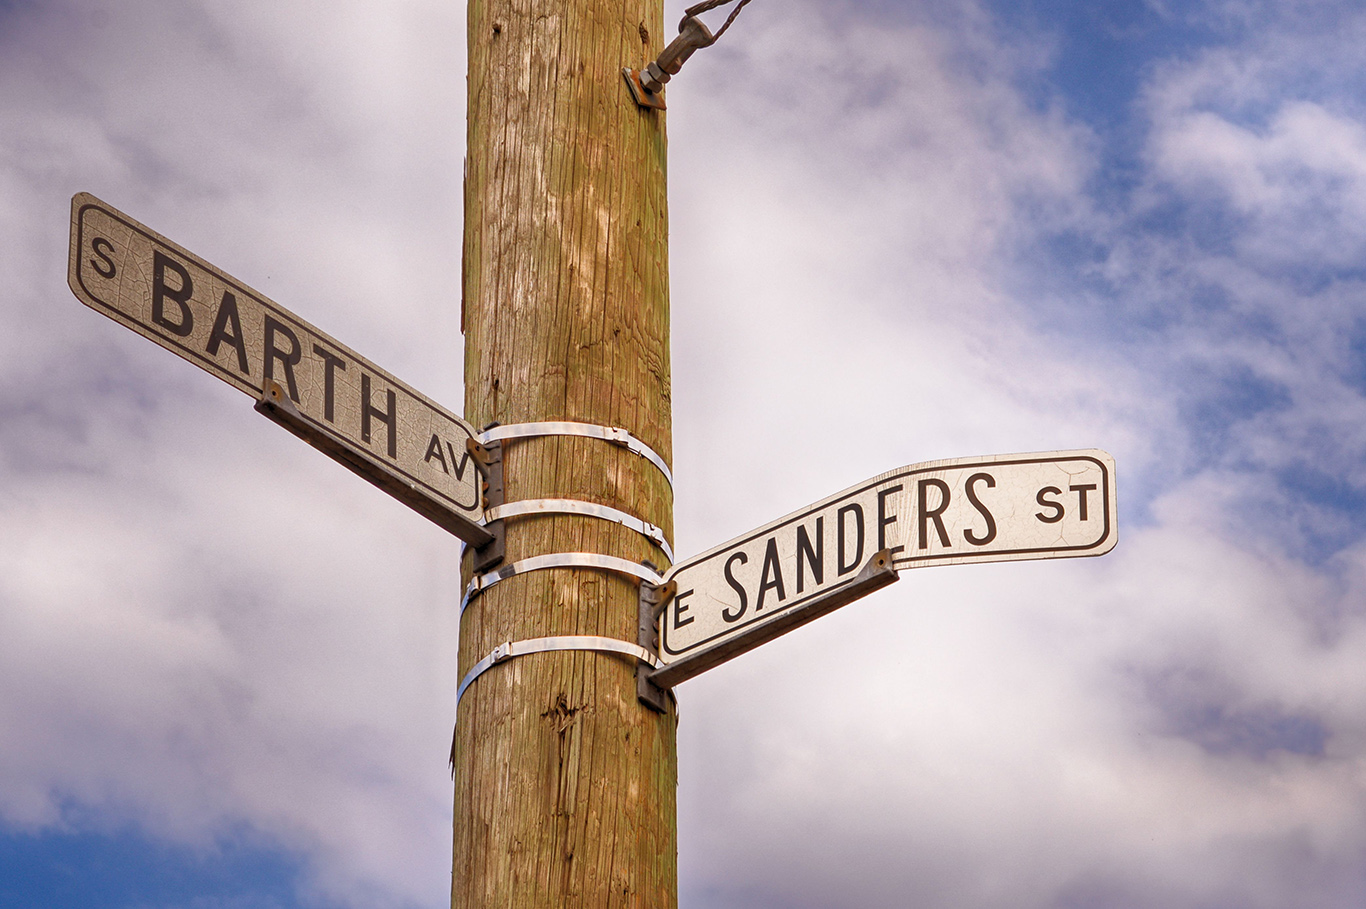 What's in a Name: Sanders Street